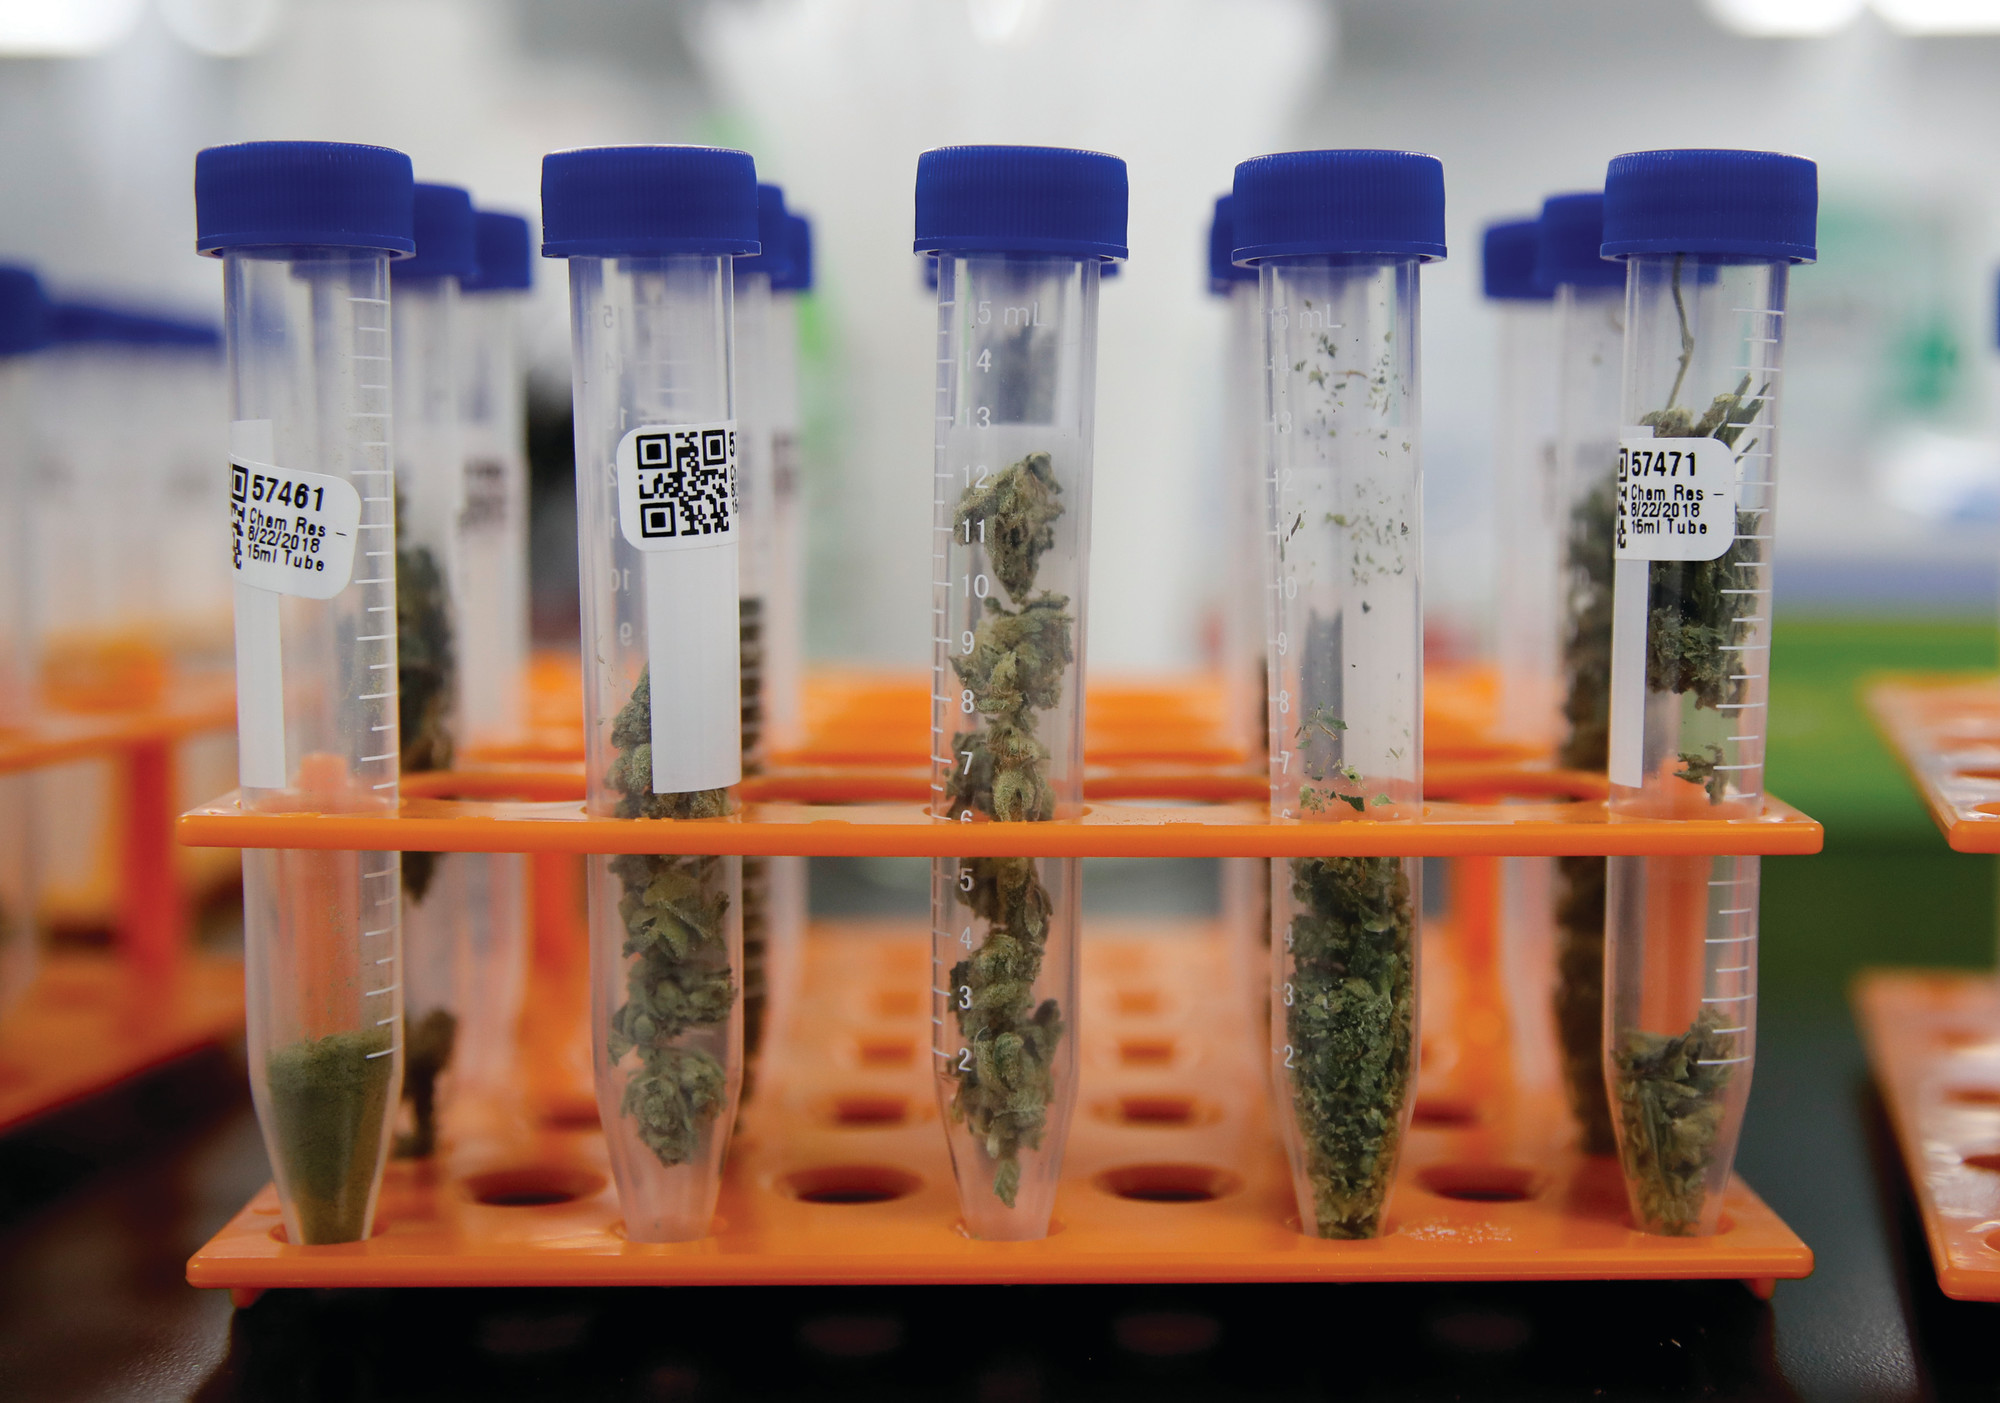 Marijuana samples are organized at Cannalysis, a cannabis testing laboratory, in Santa Ana, California. Nearly 20 percent of the marijuana and marijuana products tested in California for potency and purity have failed, according to state data provided to The Associated Press.